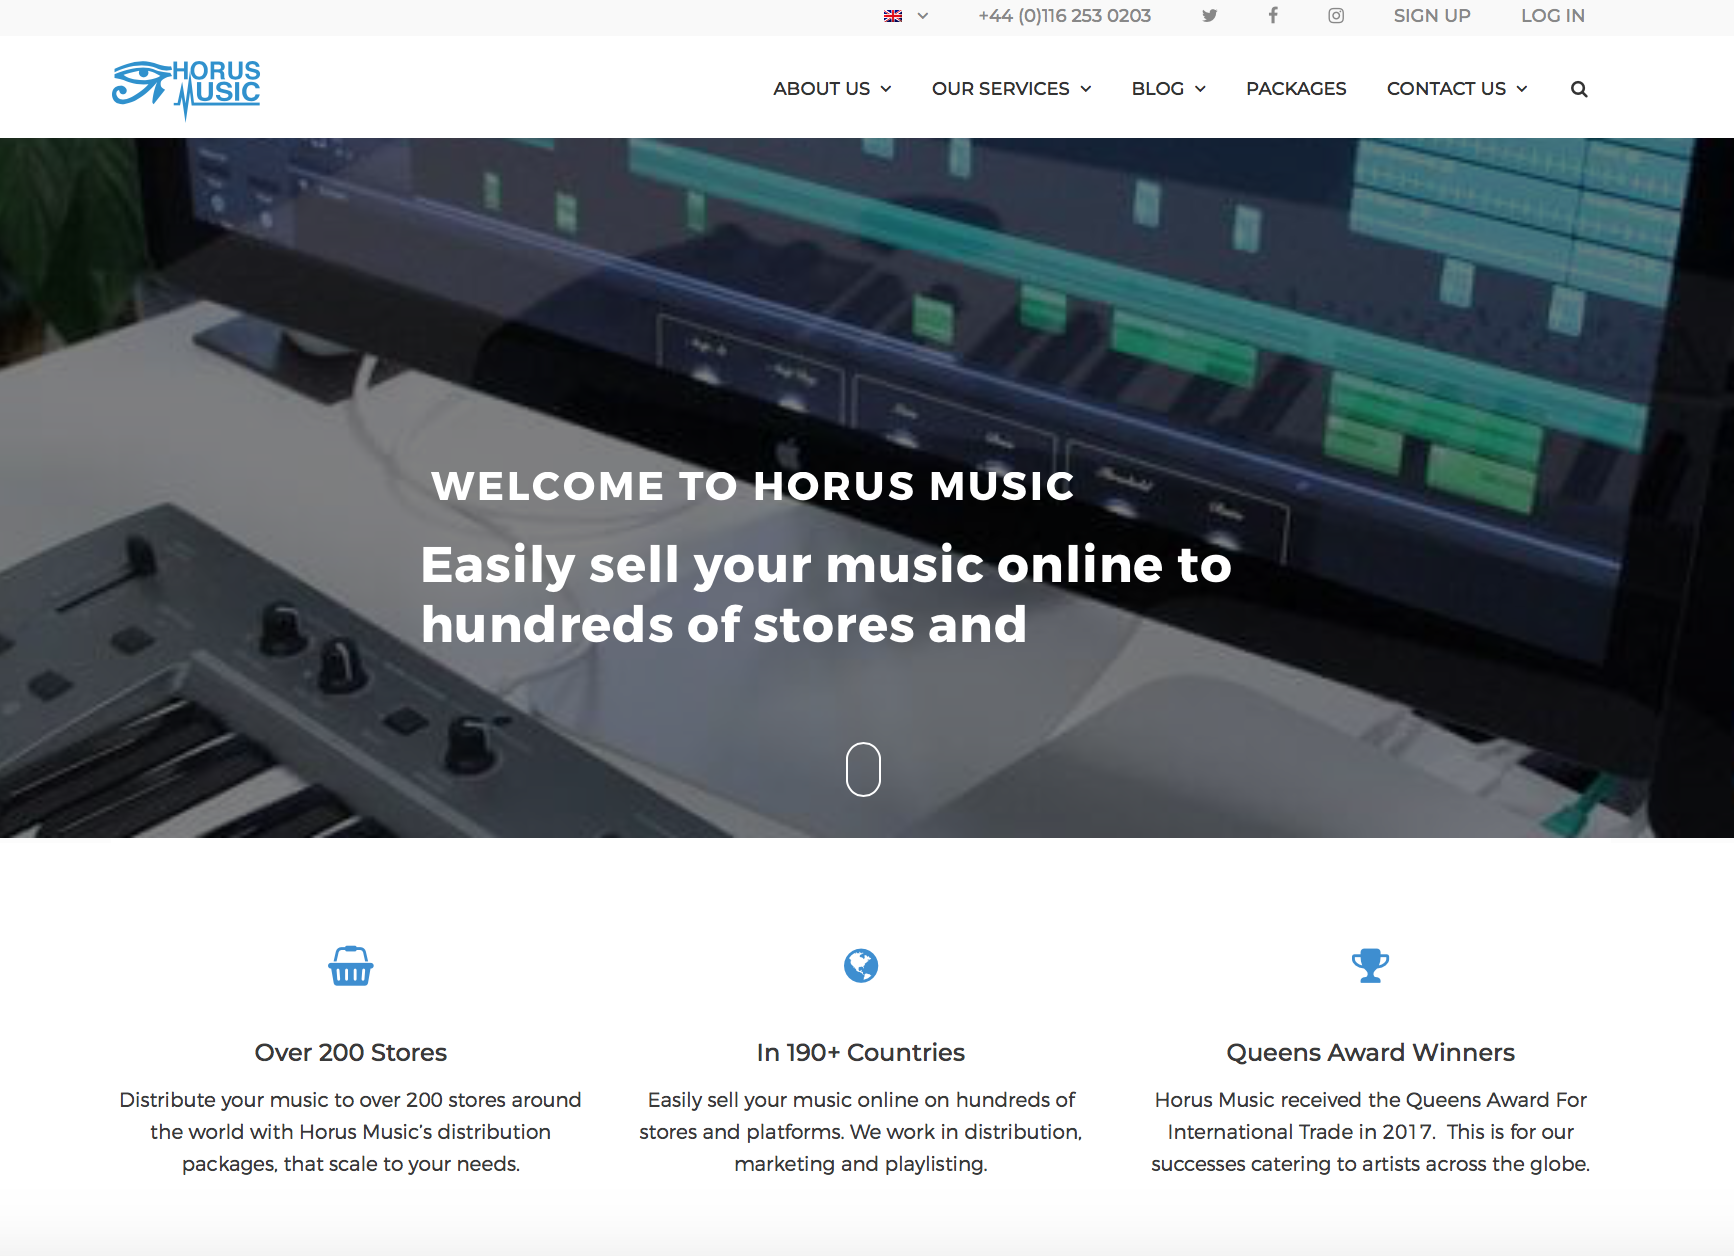 horus music website redesign case study